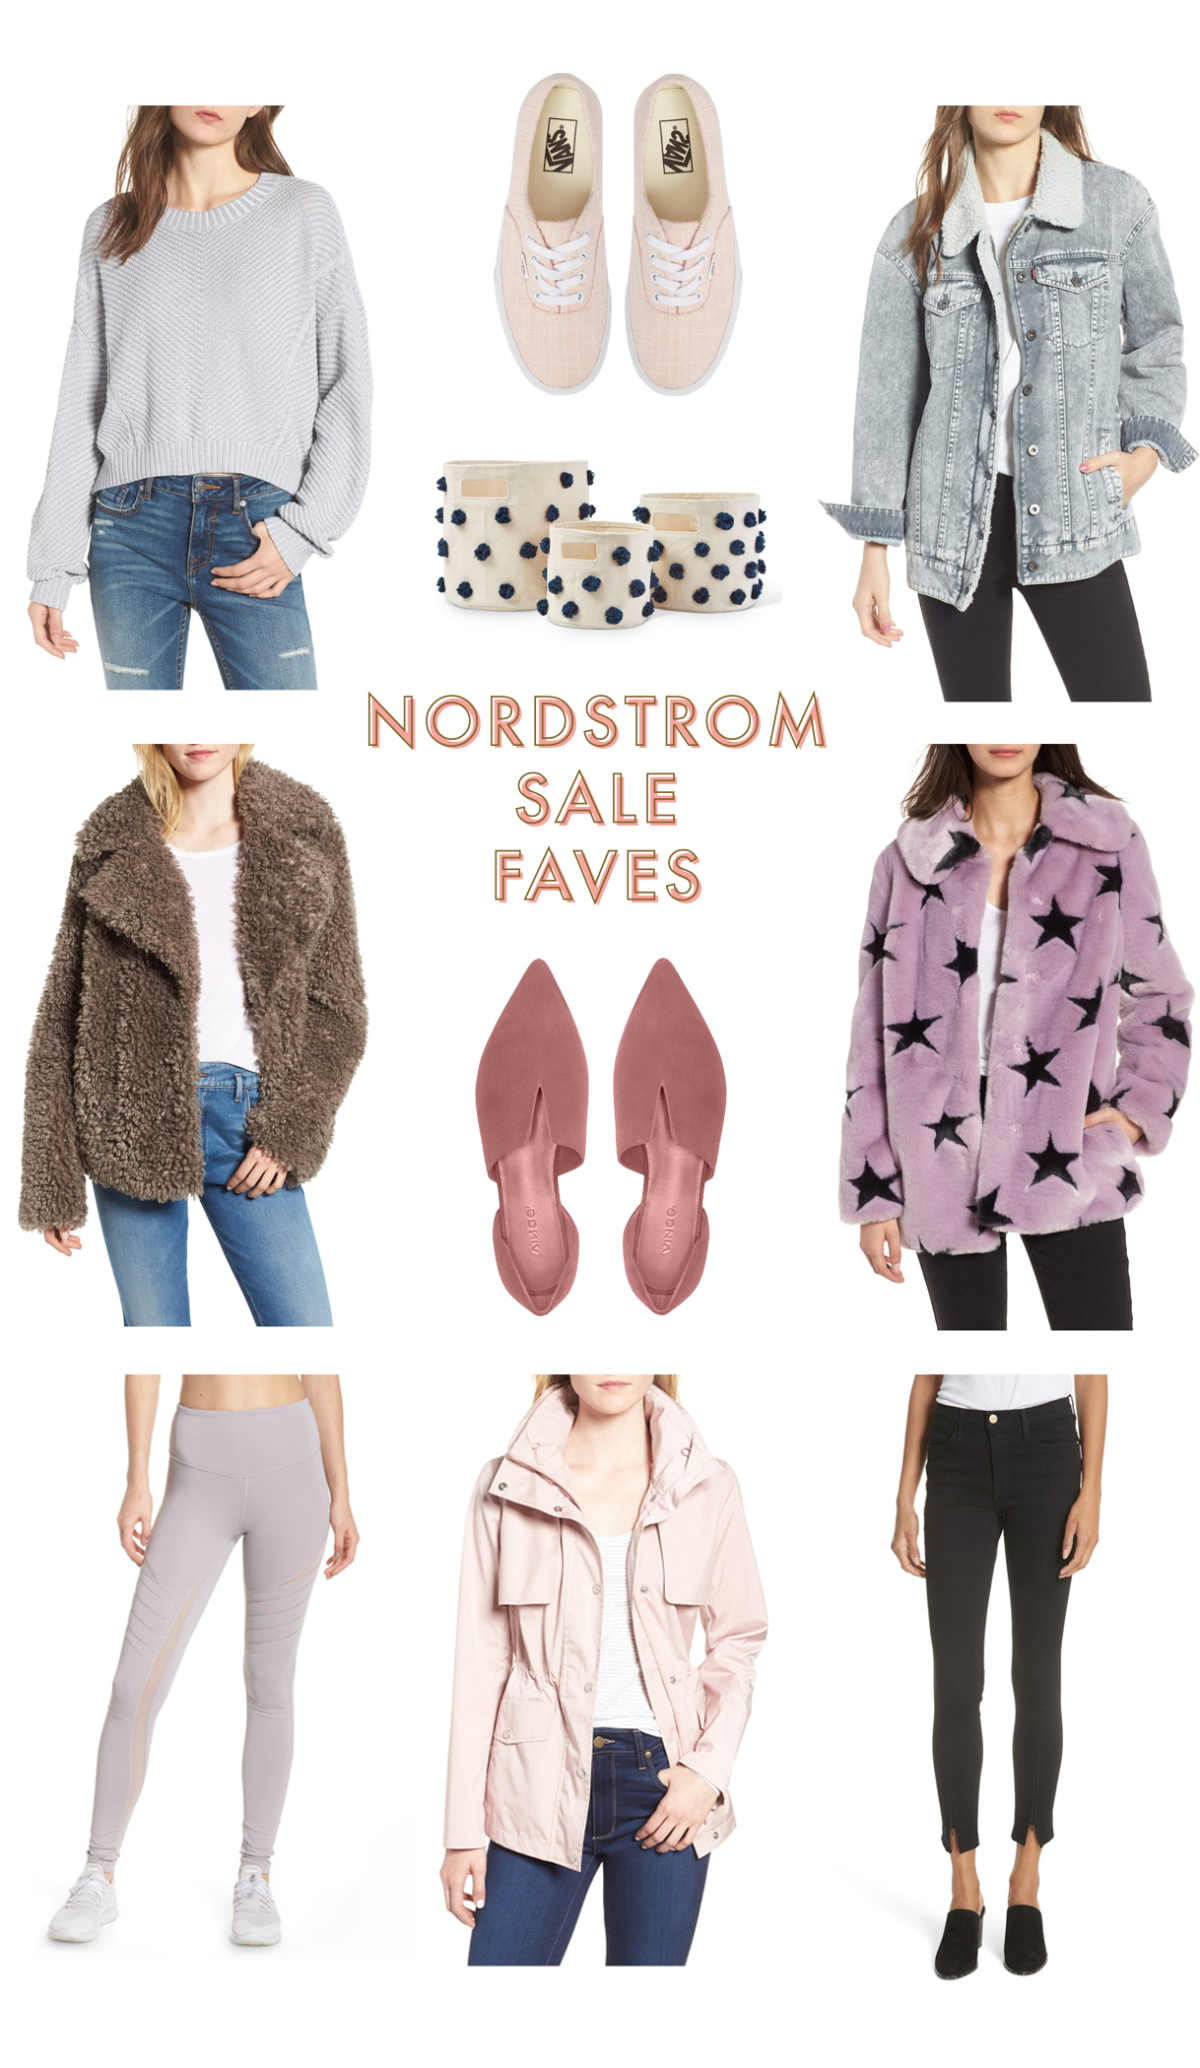 nordstrom sale mom favorites for fall